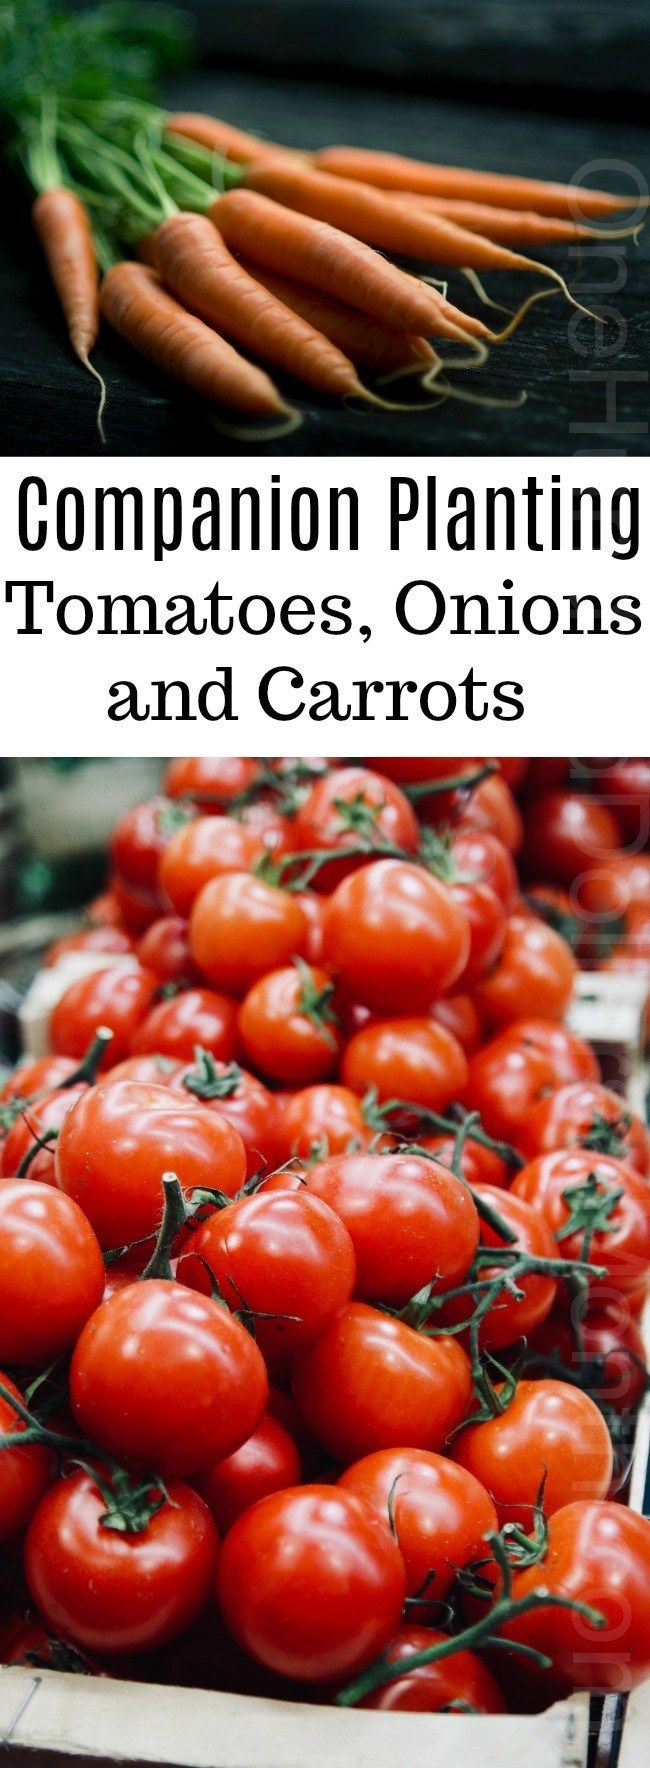 Companion Planting Tomatoes Onions And Carrots 400 x 300